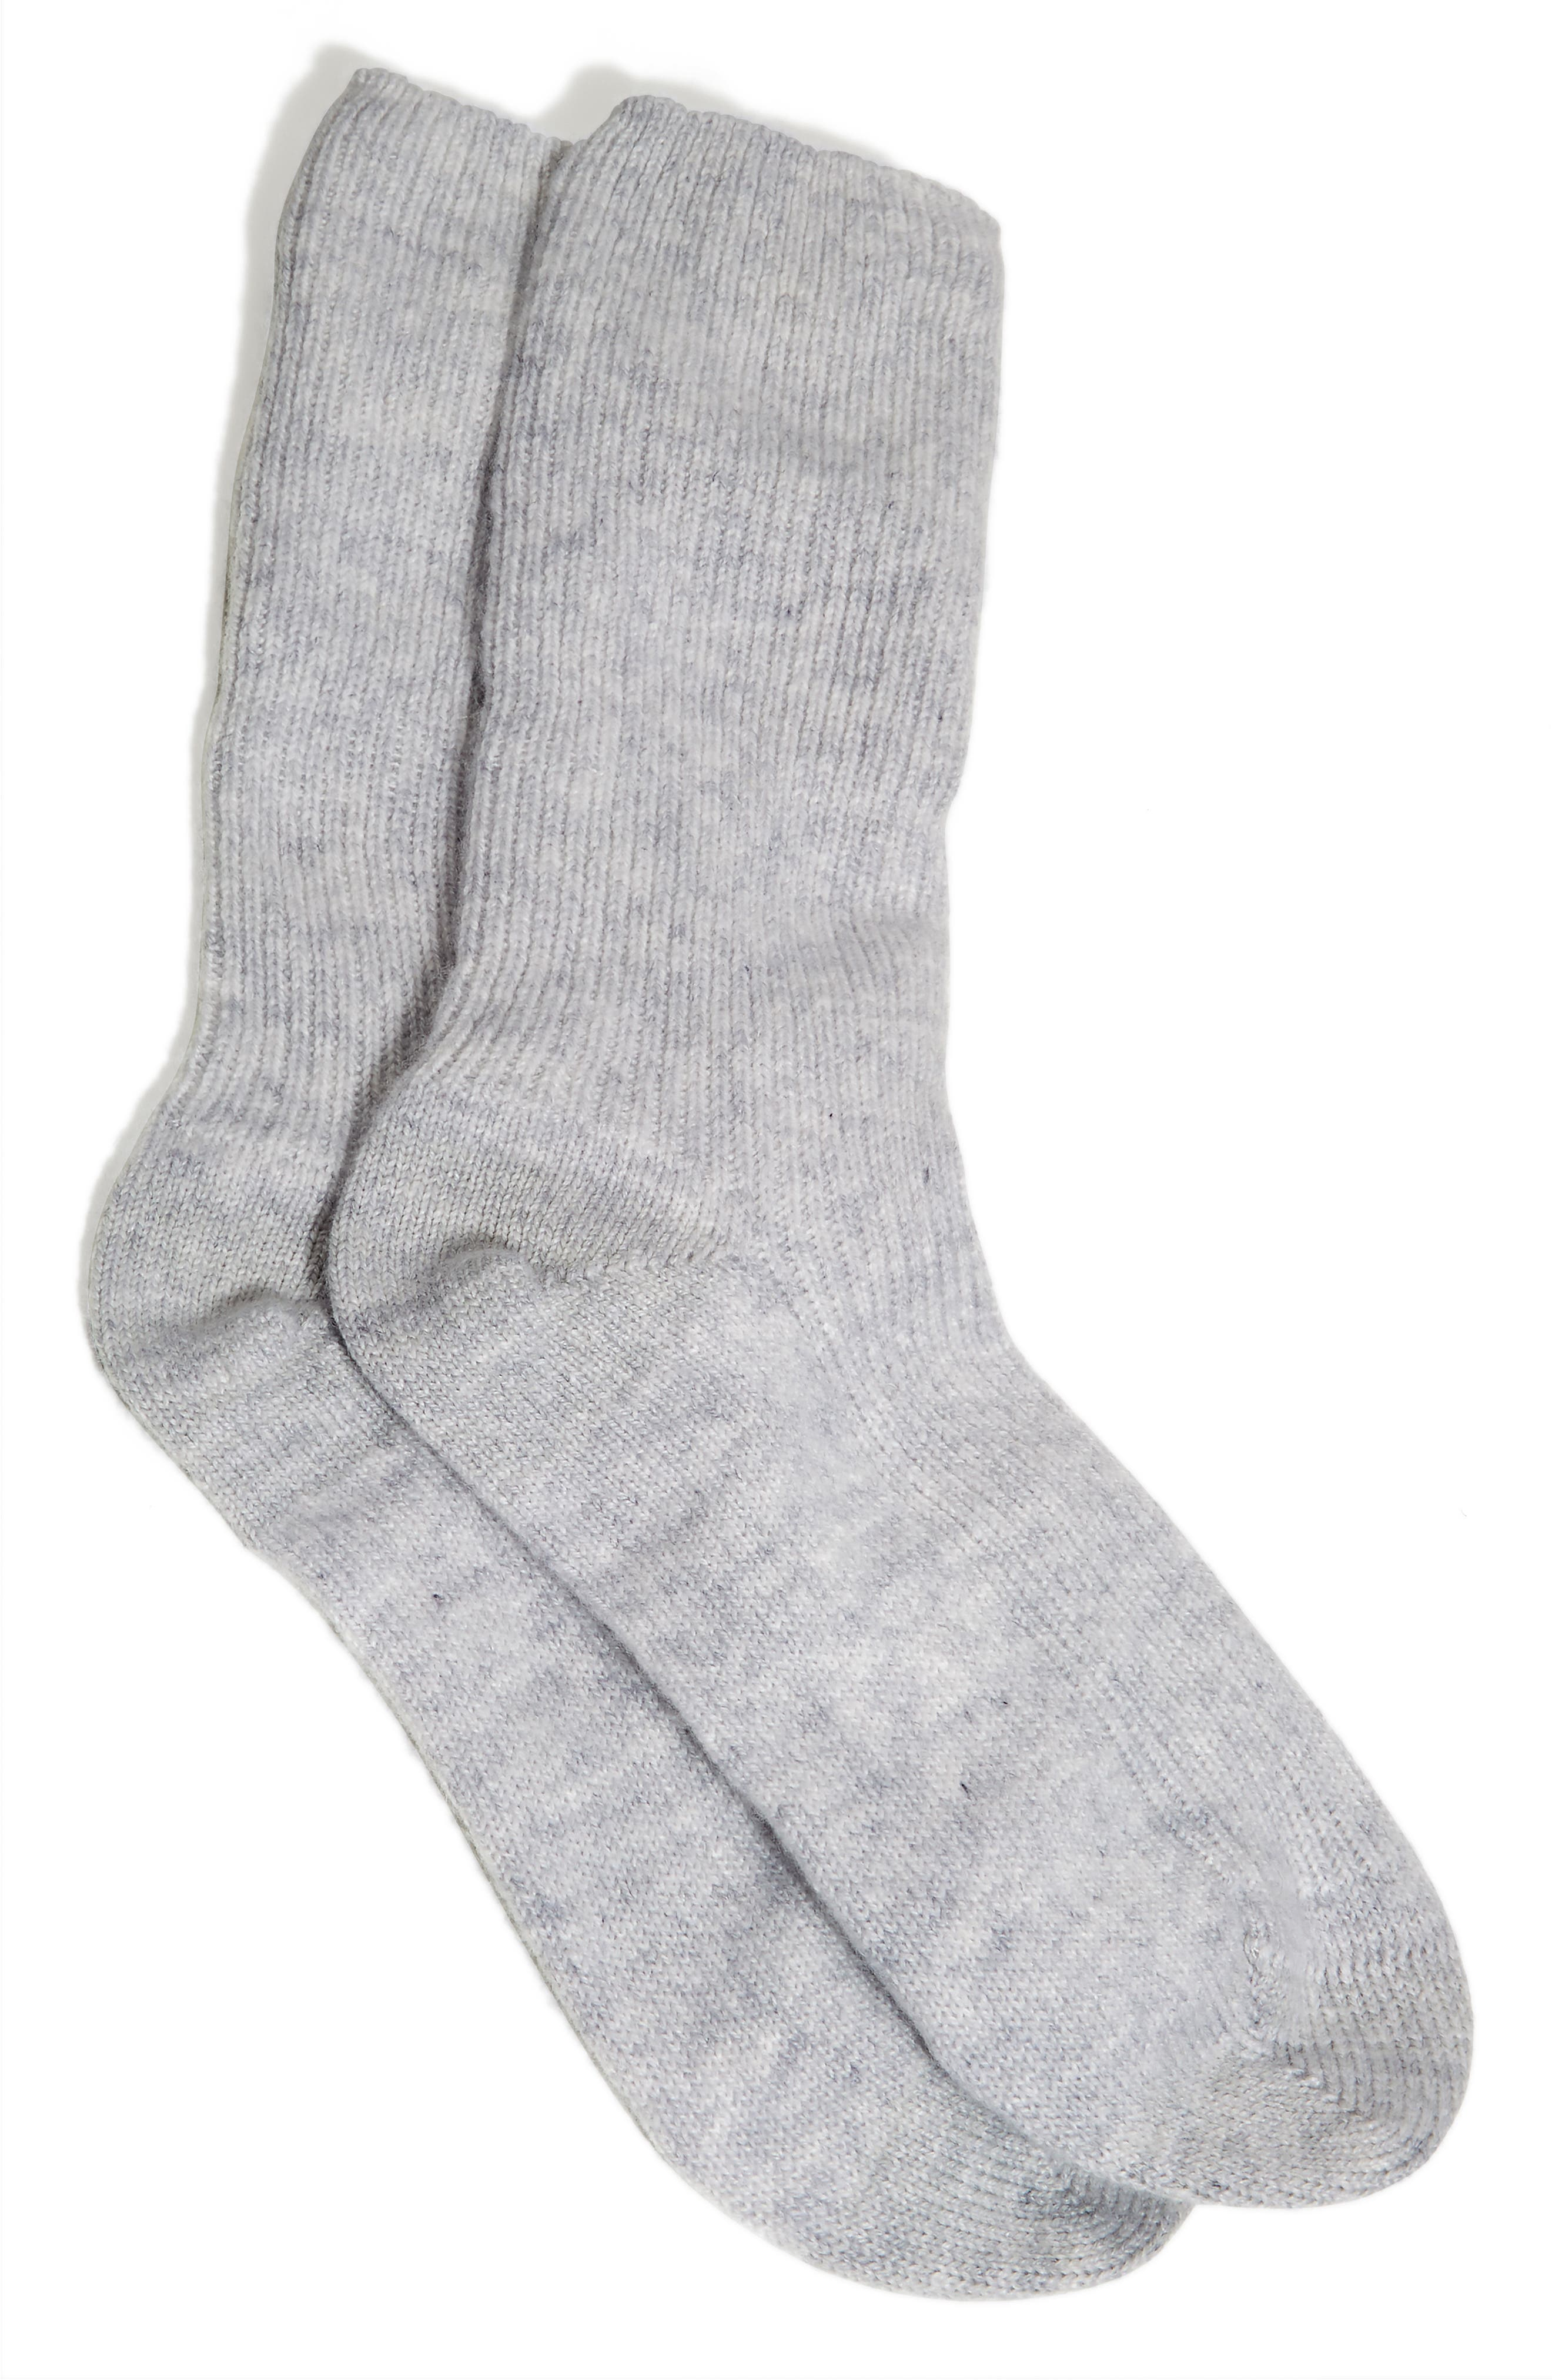 THE WHITE COMPANY Cashmere Bed Socks, Main, color, SILVER GREY HEATHER